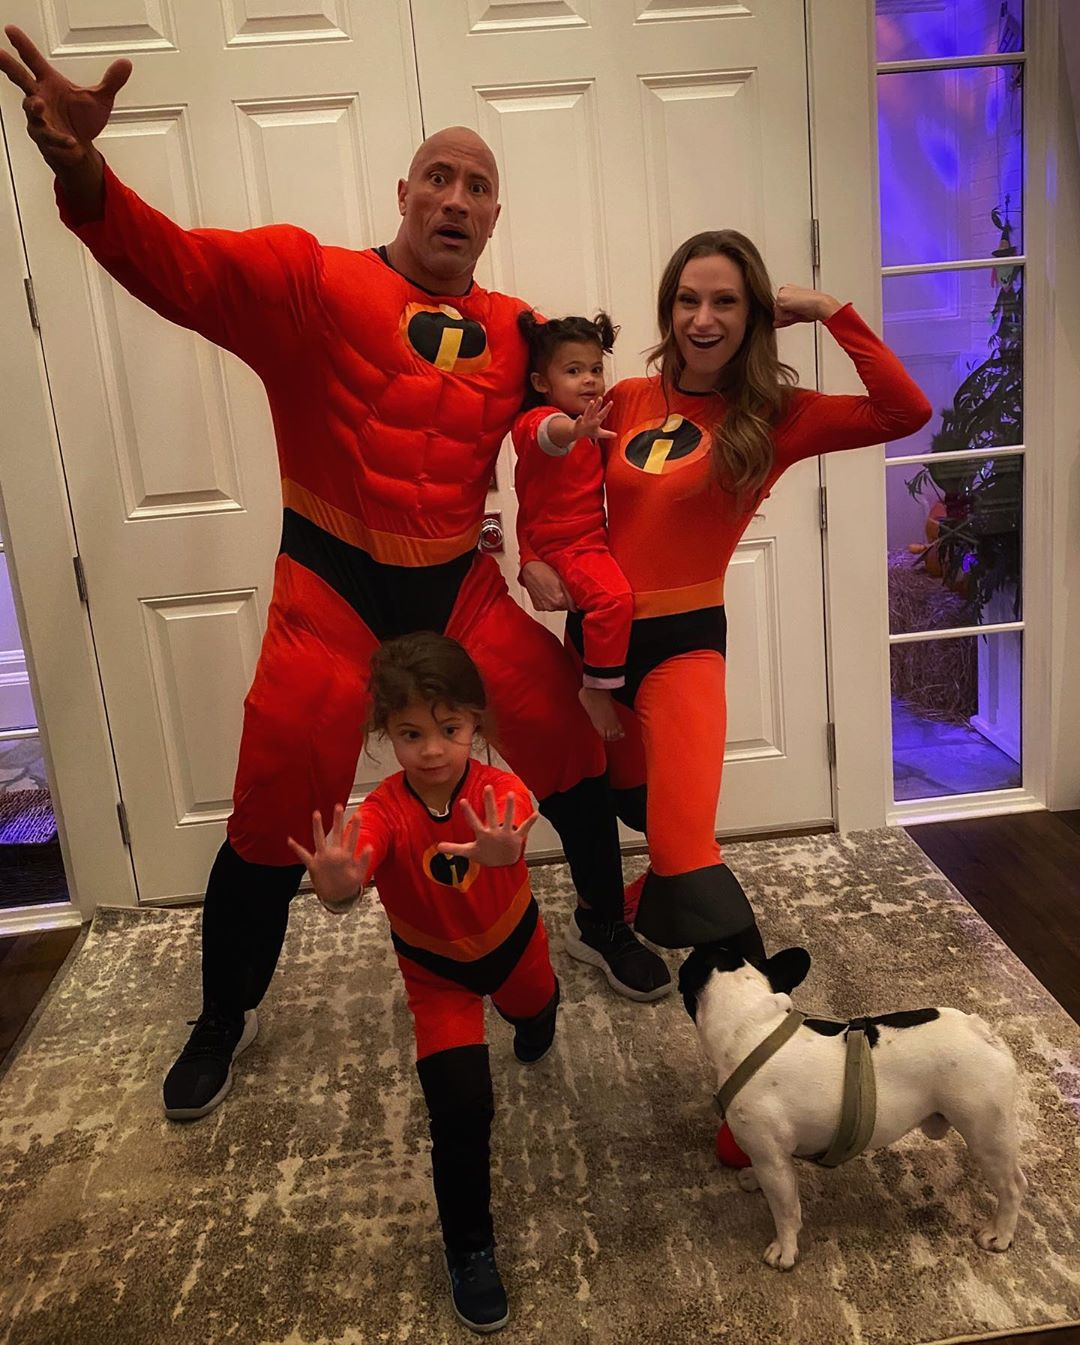 Dwayne Johnson Halloween 2020 Halloween 2019: Dwayne Johnson aka The Rock and his family are